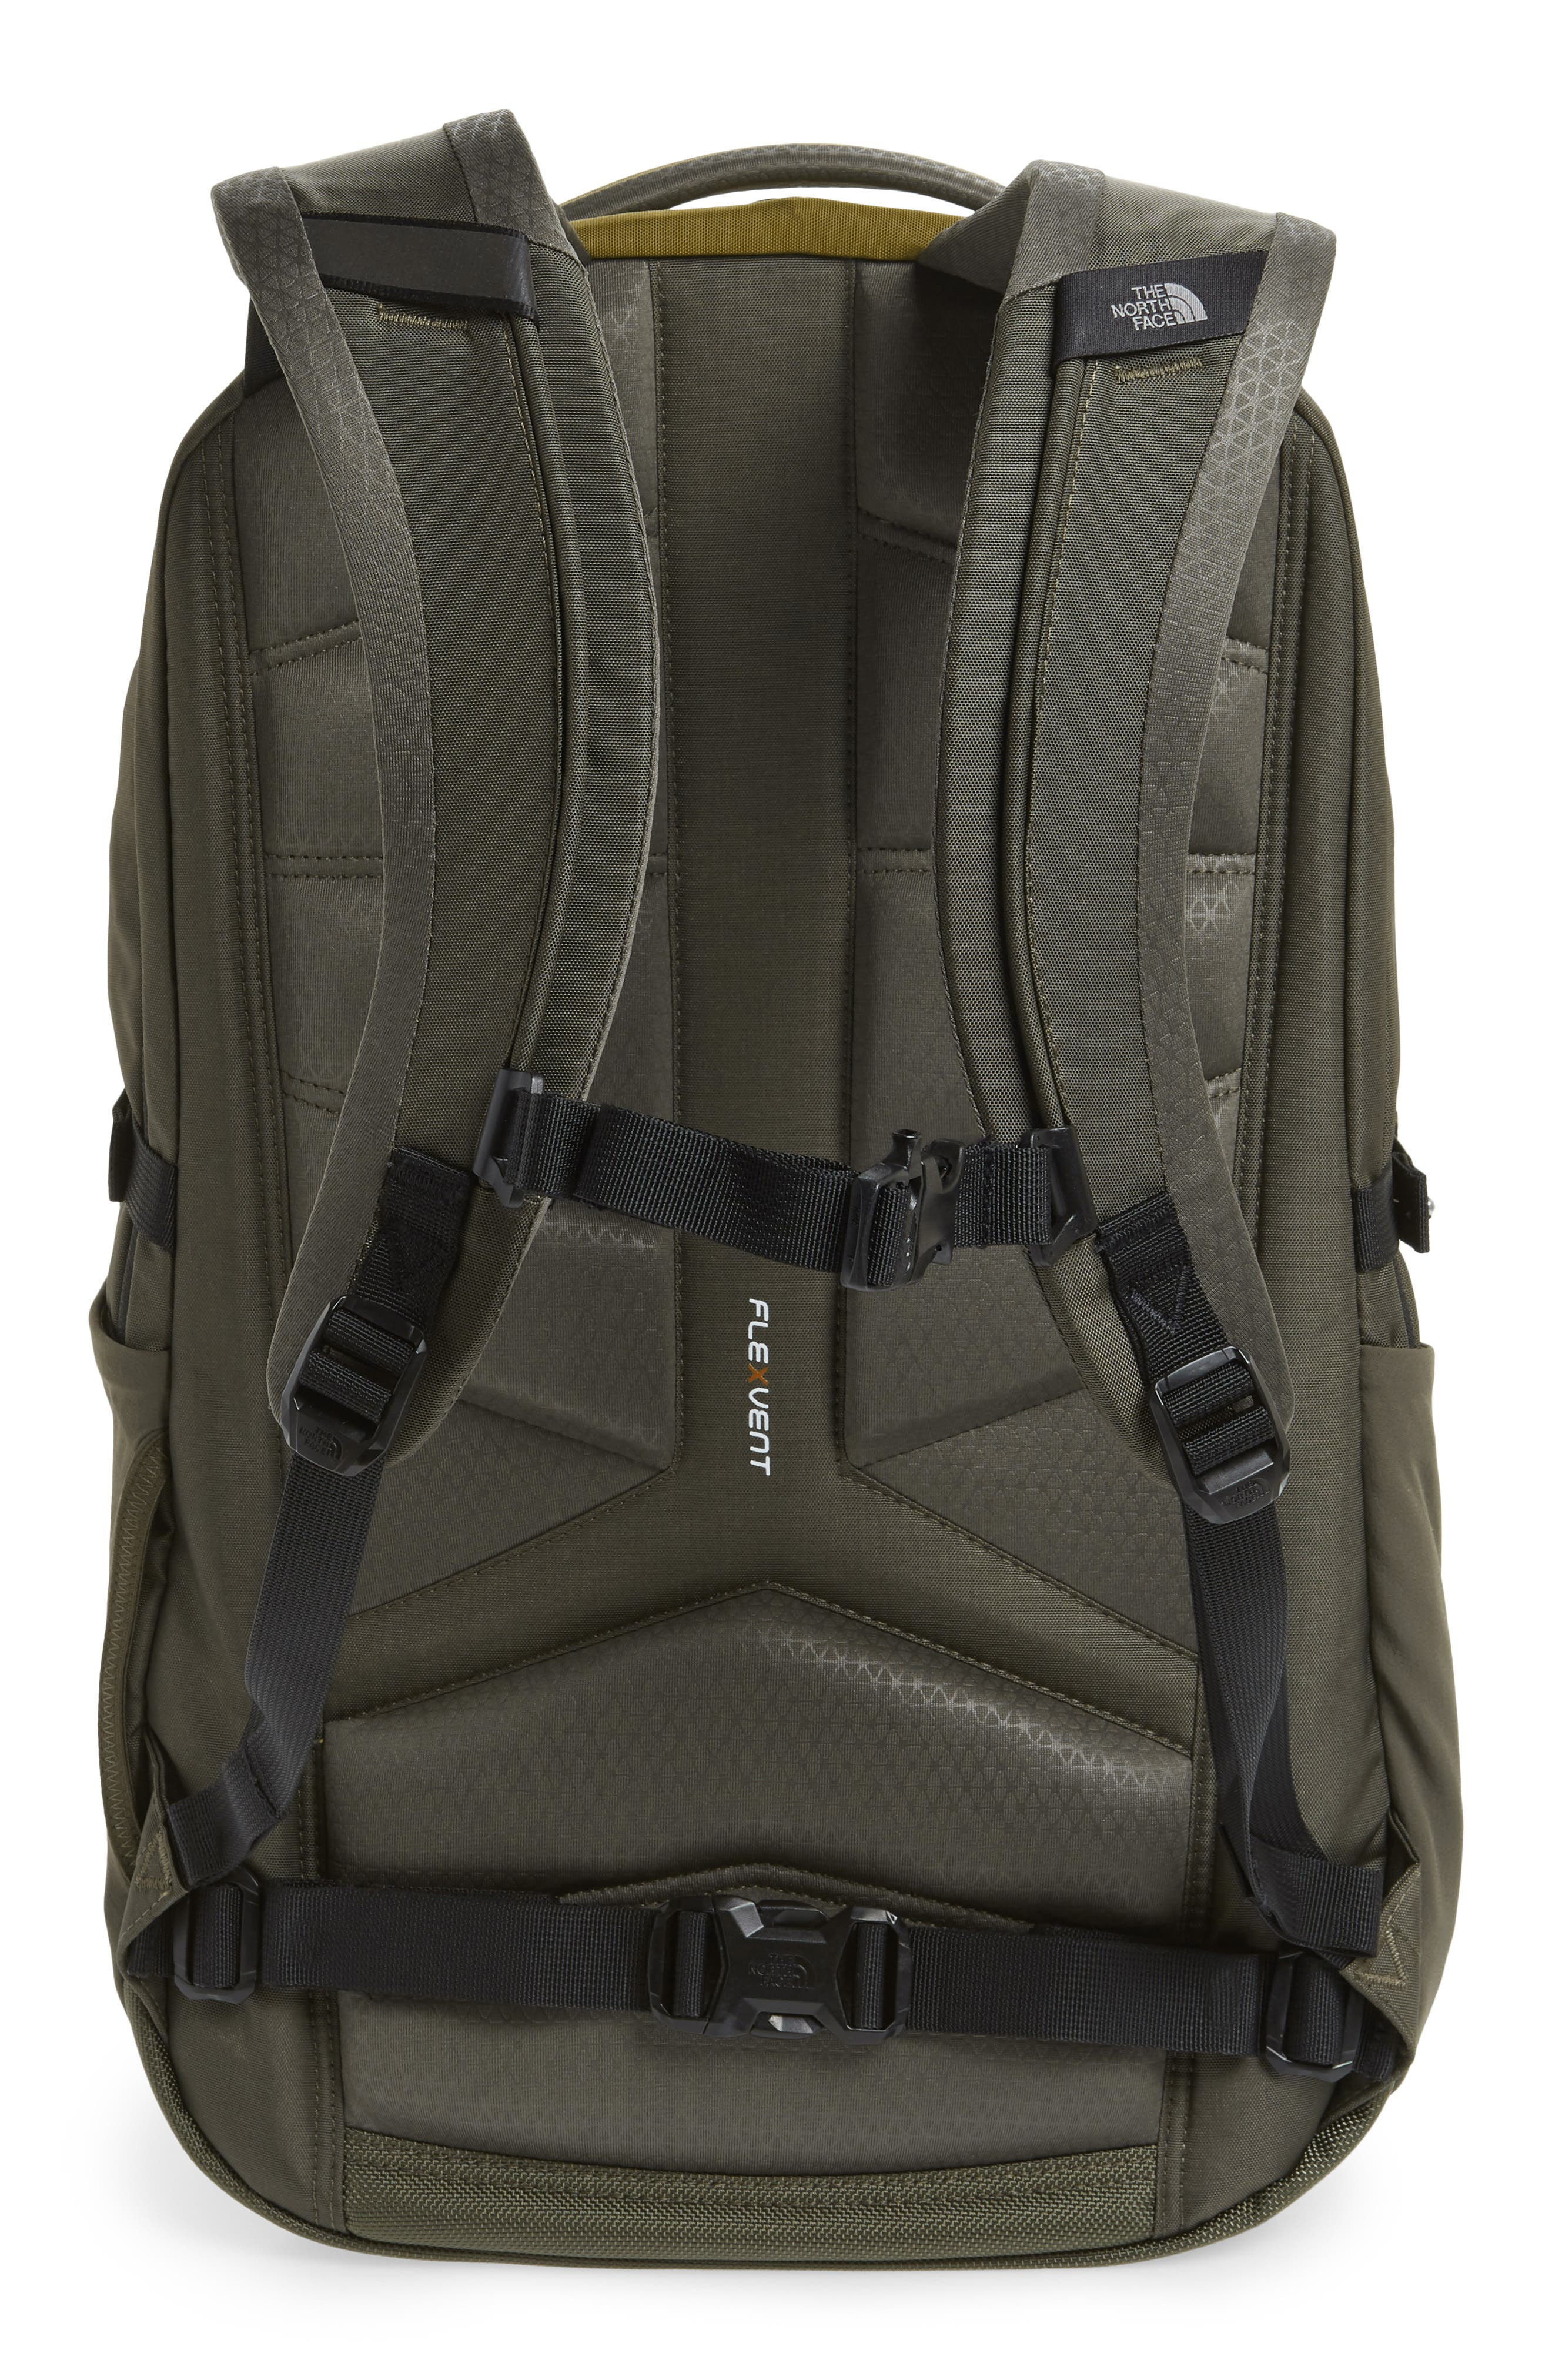 Surge Backpack,                             Alternate thumbnail 3, color,                             FIR GREEN/ NEW TAUPE GREEN